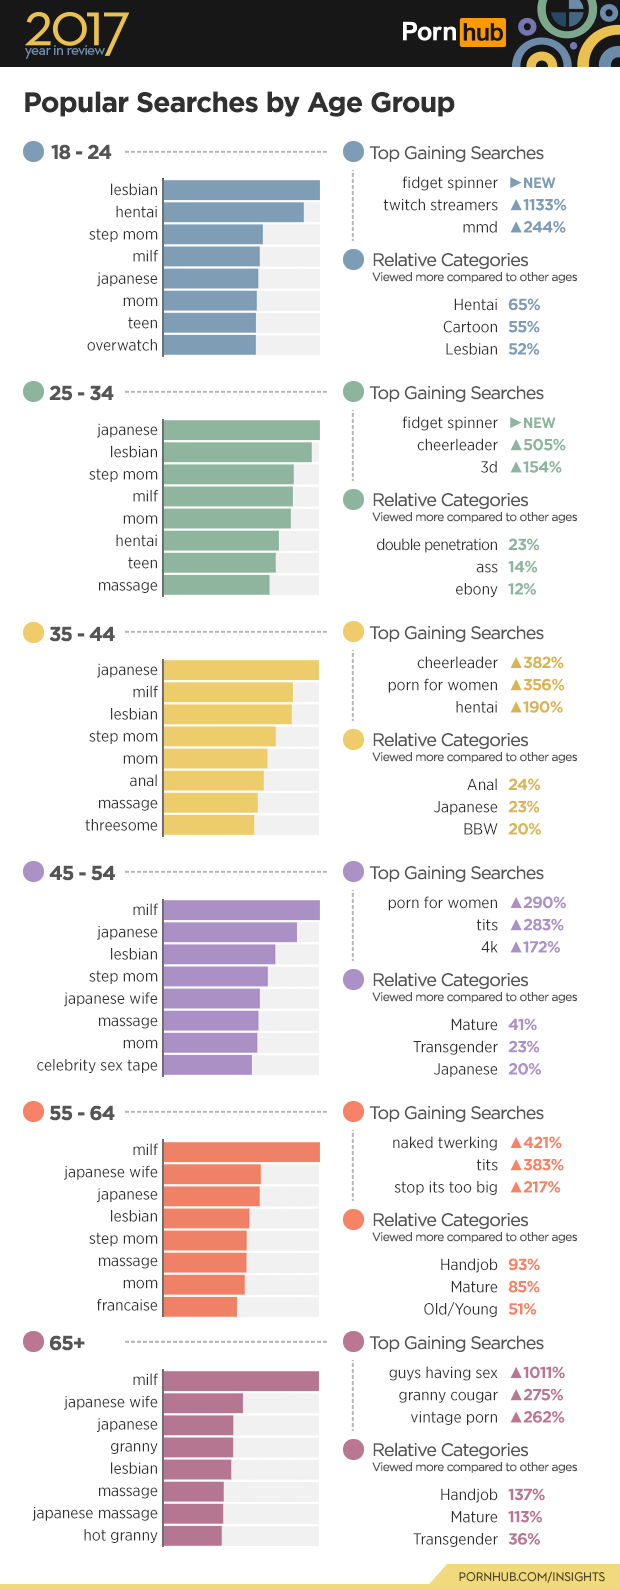 Milf Made Its Way Into The Top Four Searches For All Of The Age Groups This Year And Passed One Position To Be The Fourth Most Searched For Among 18 24